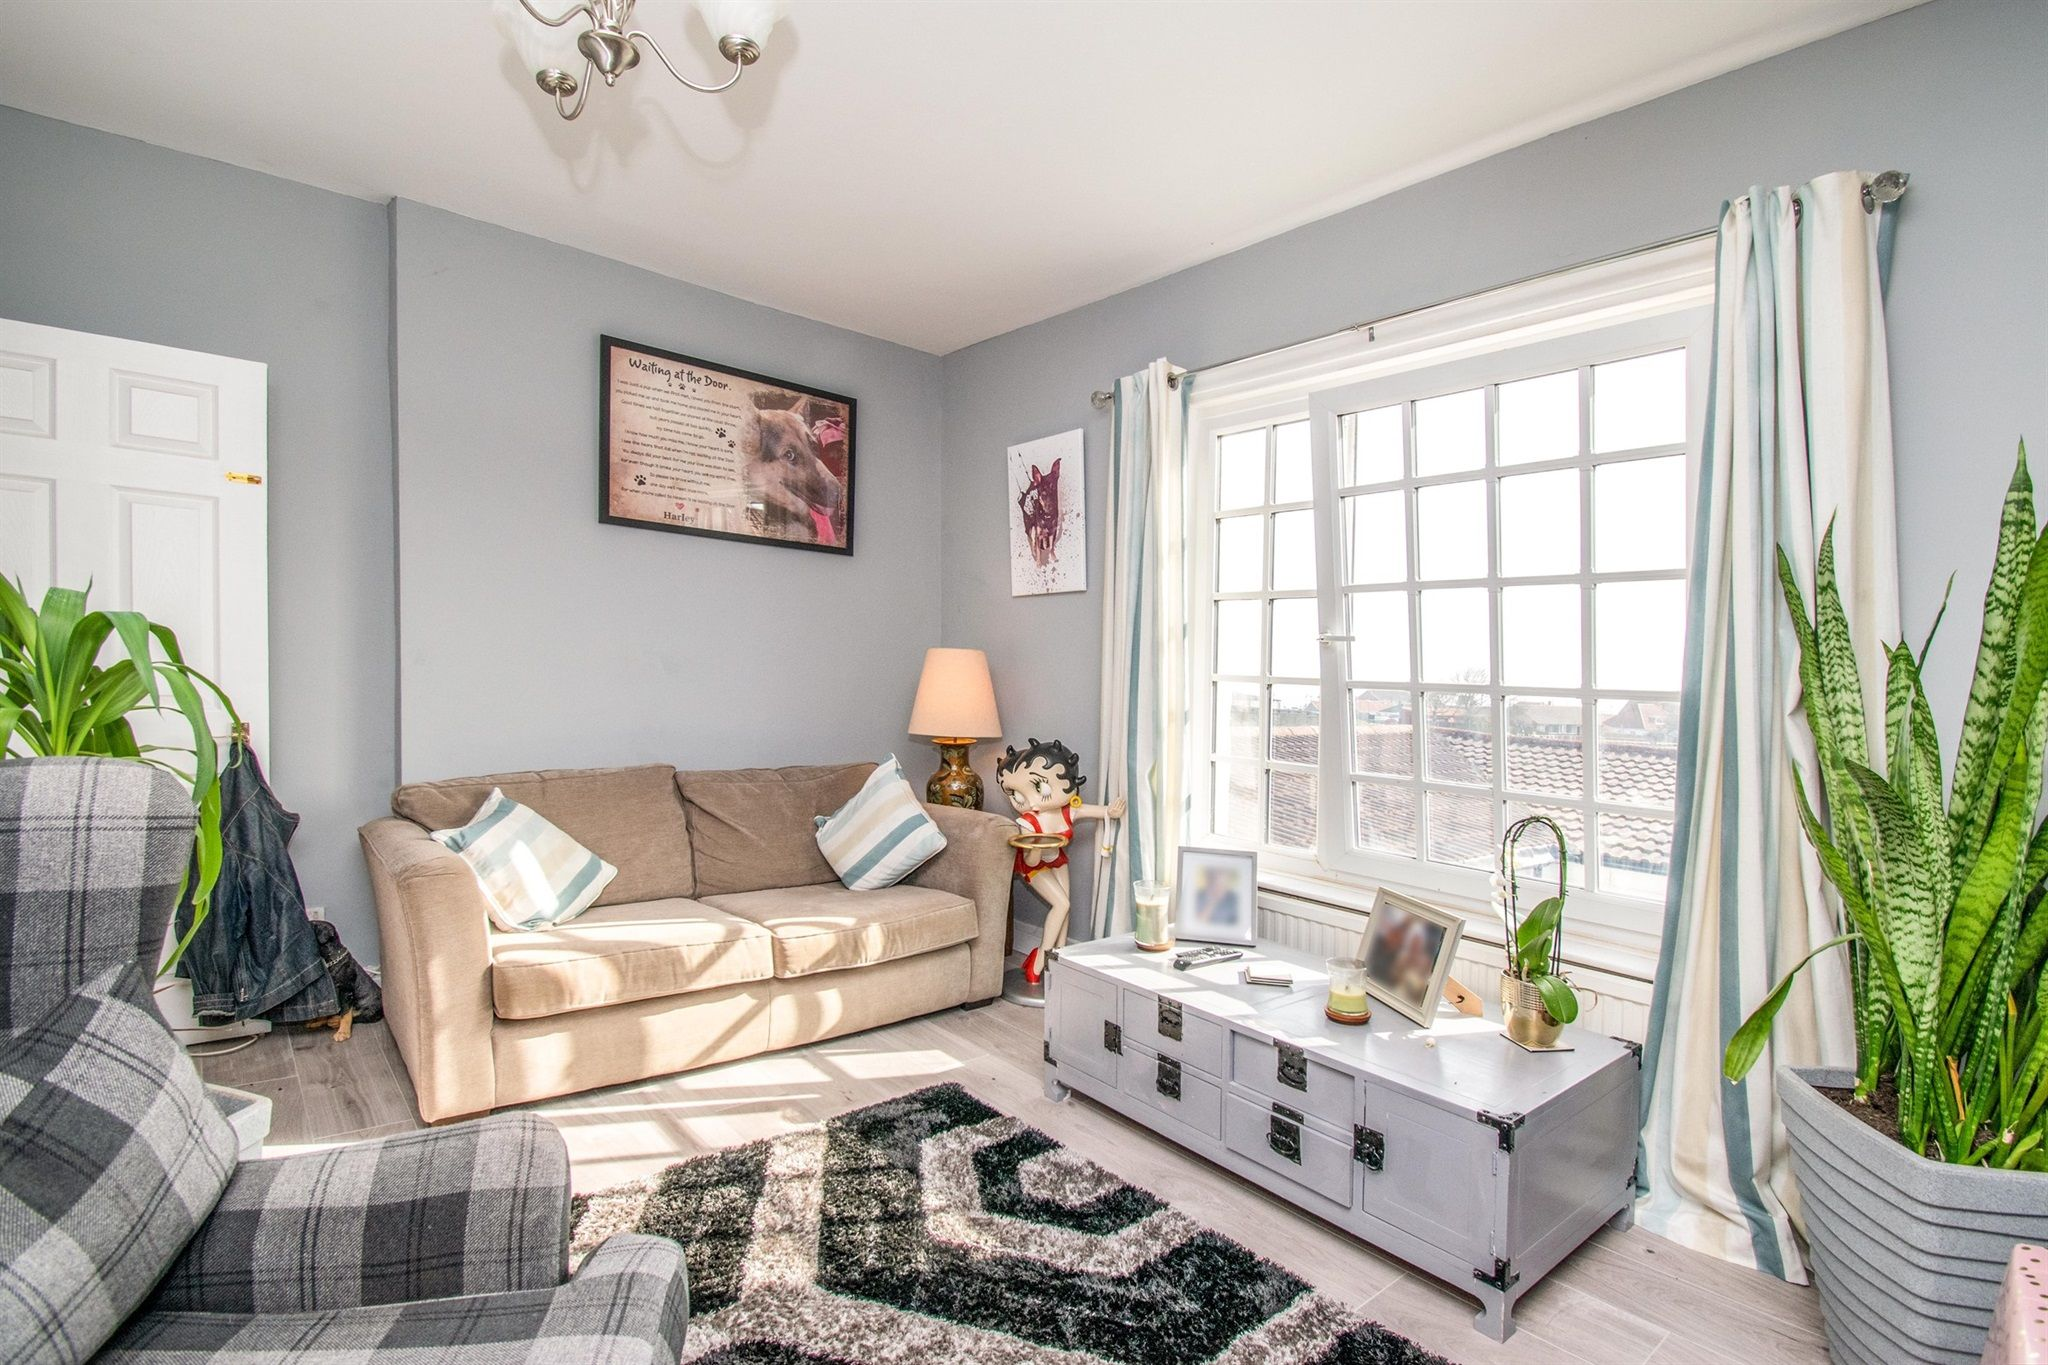 3 Bed Flat For Sale In High Street Mundesley Norwich Nr11 Zoopla